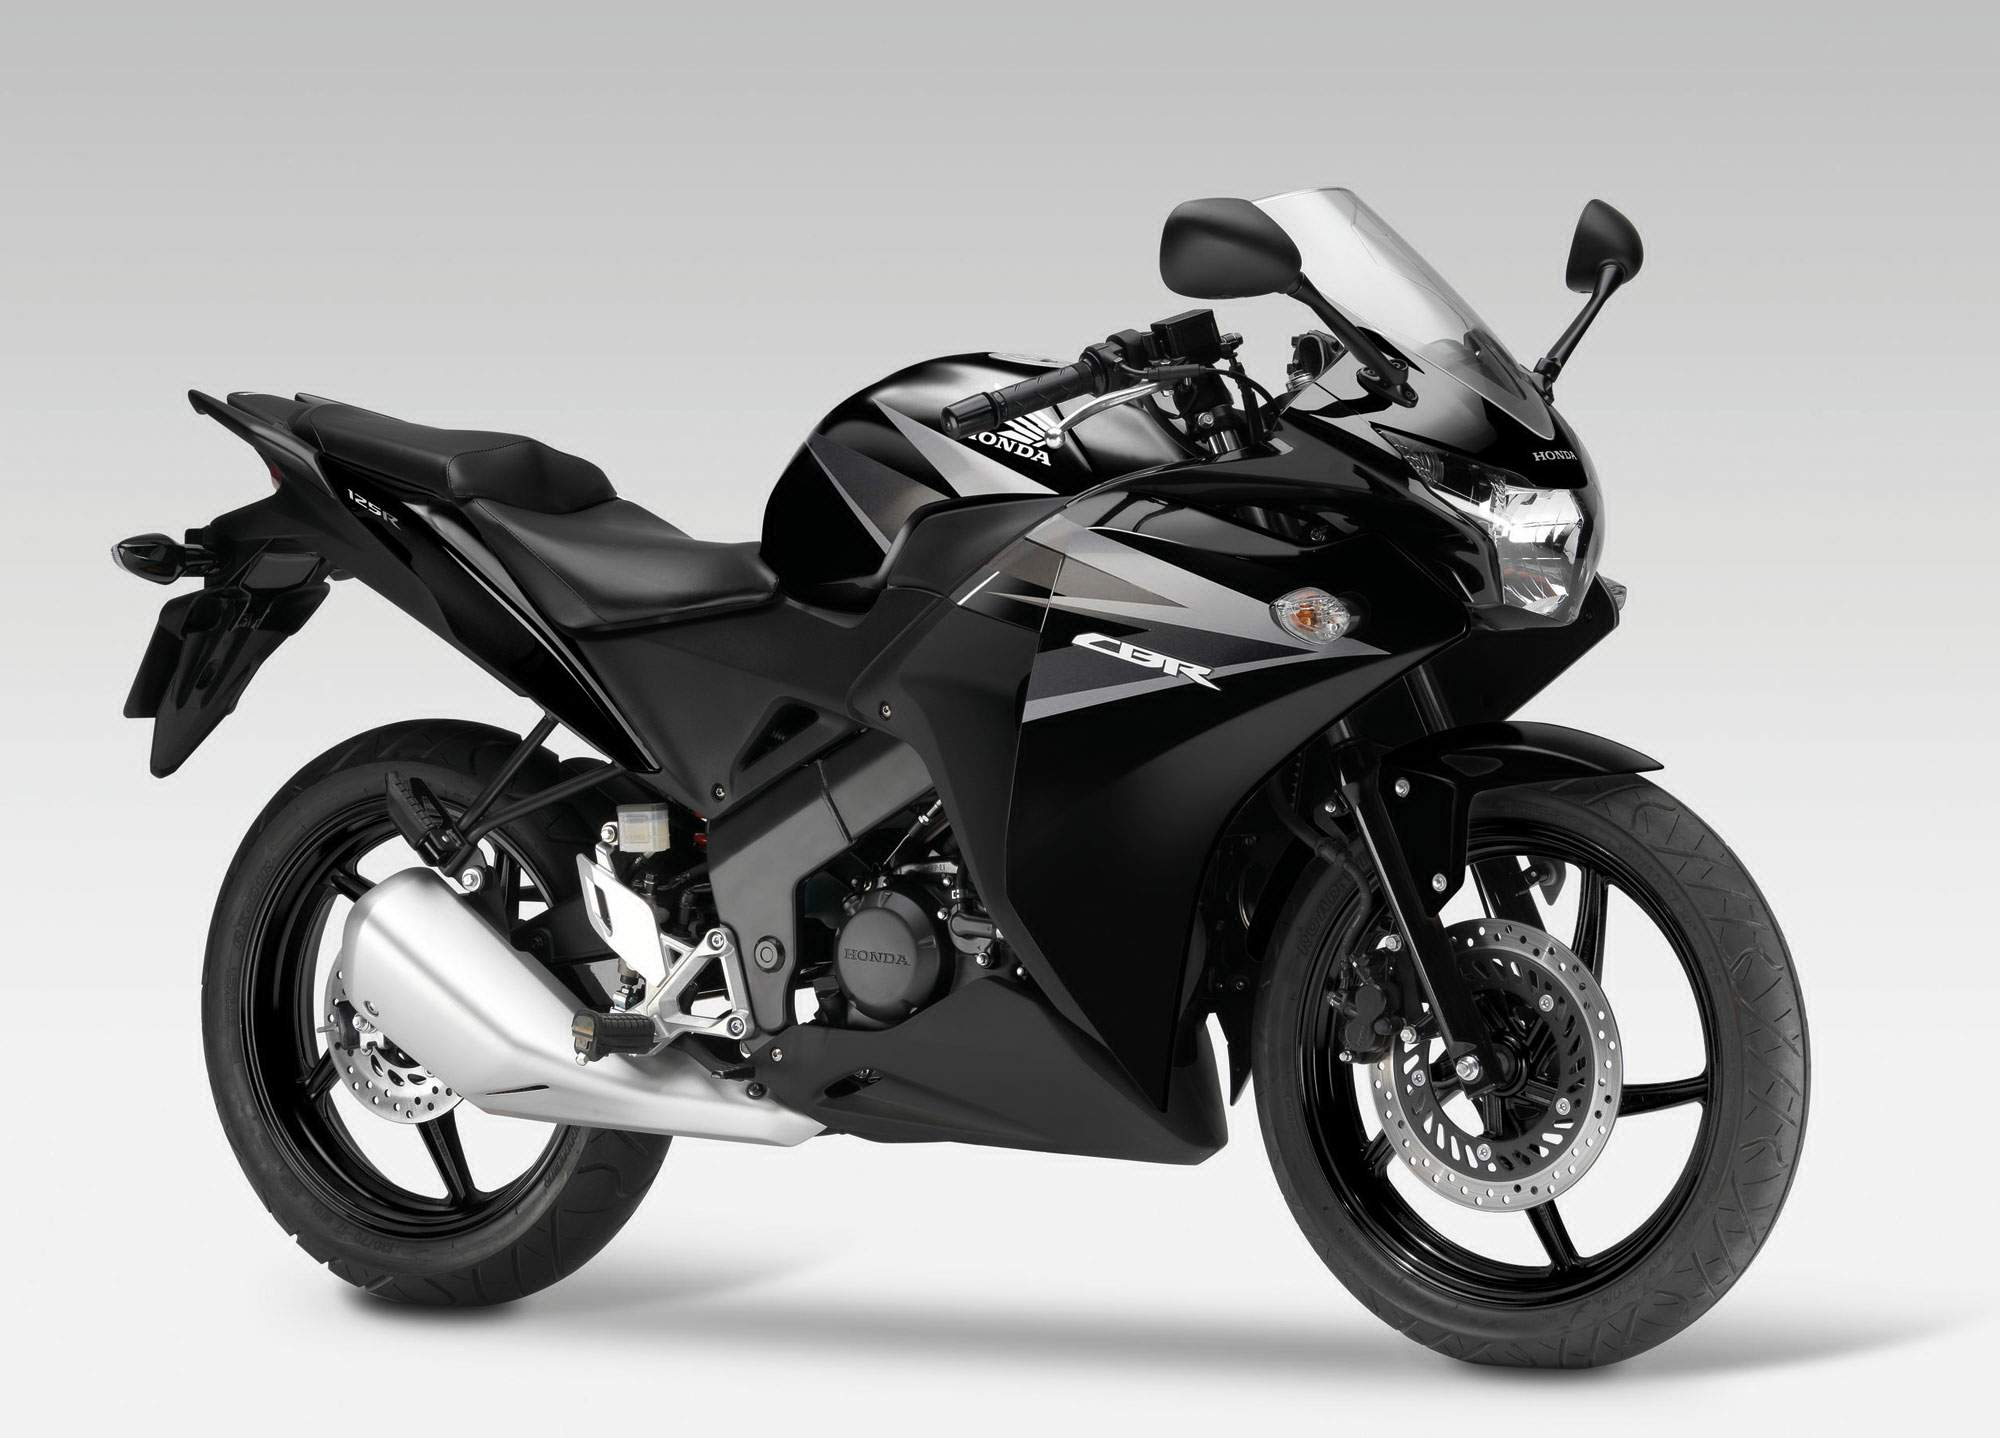 honda cbr 125r specs 2014 2015 2016 2017 2018 autoevolution. Black Bedroom Furniture Sets. Home Design Ideas